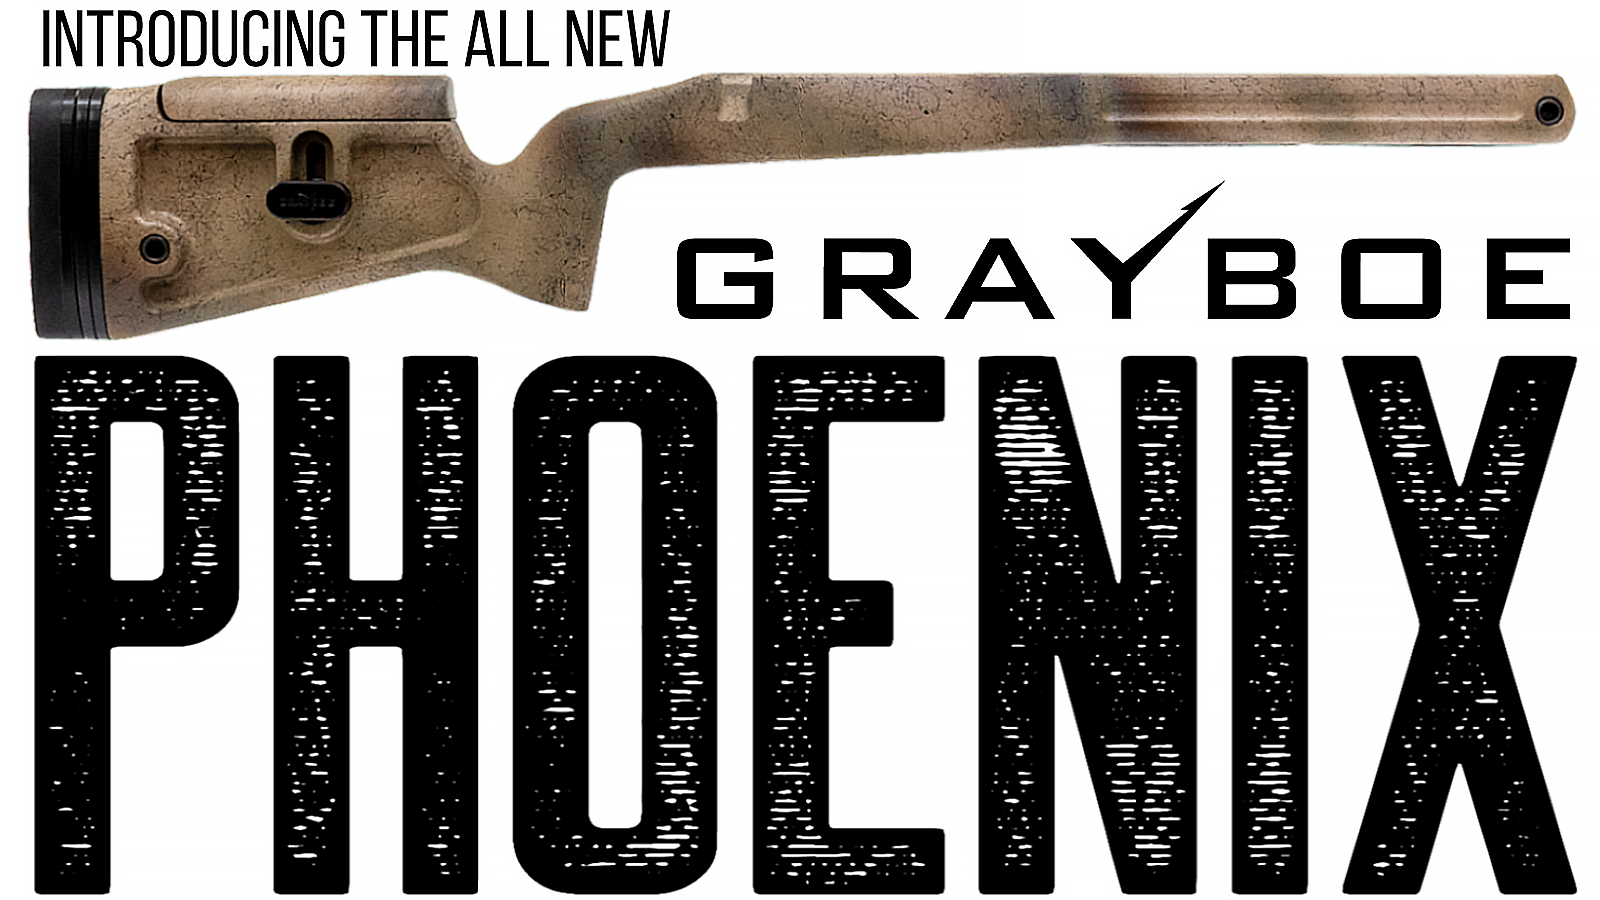 All New Grayboe Phoenix